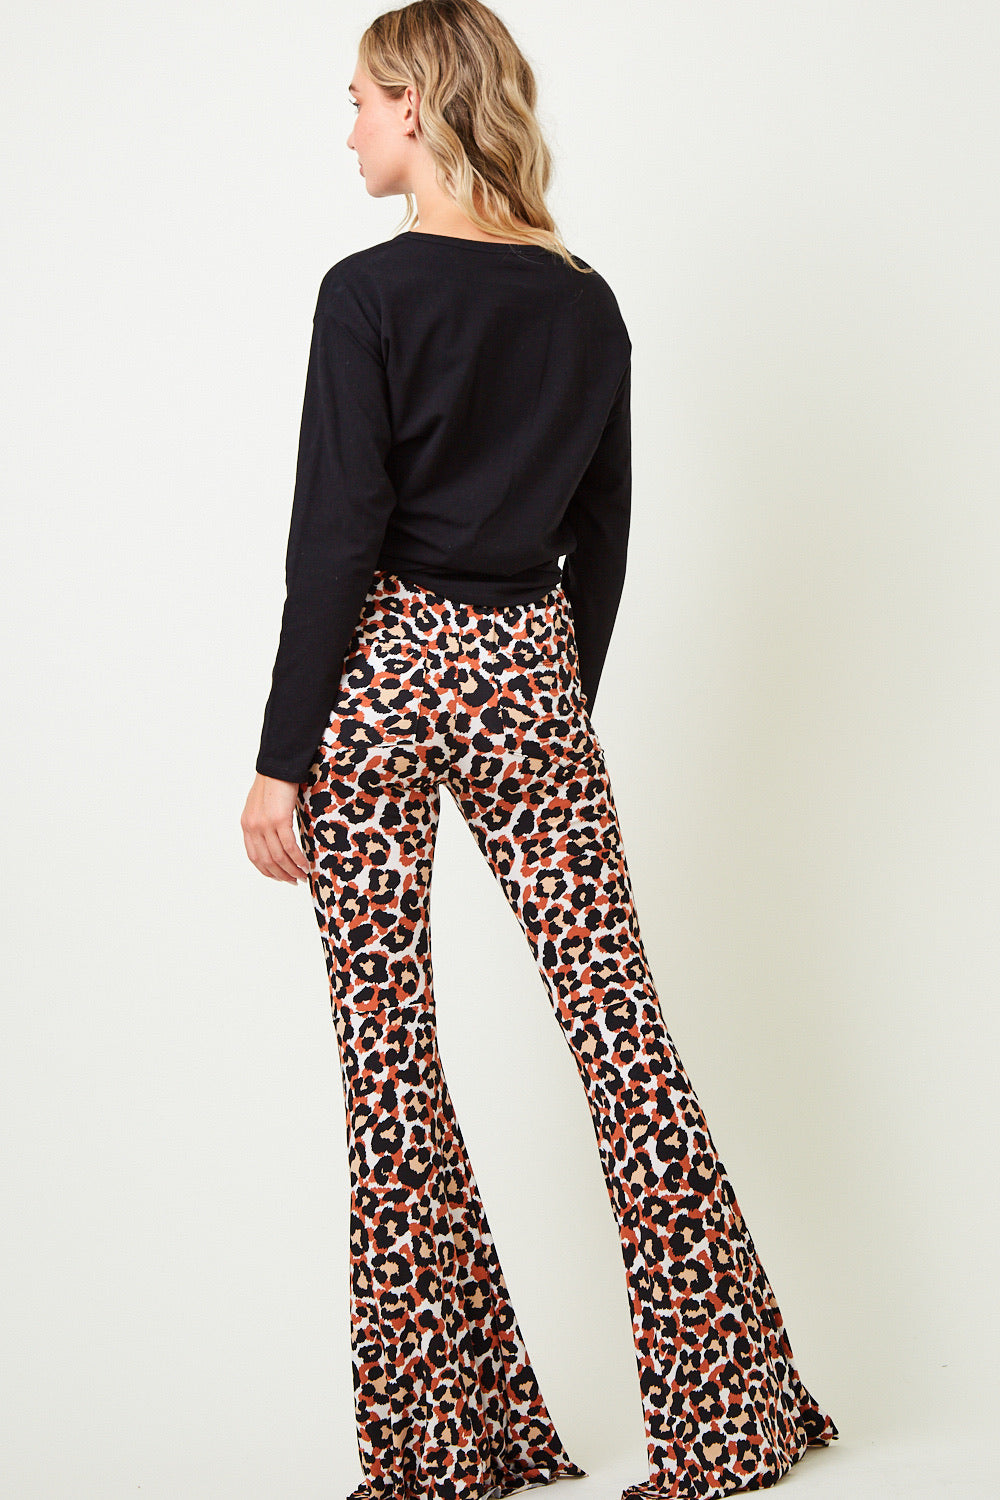 """Ole Cat Benatar"" Rusty Leopard Print Bell Bottom Pants"